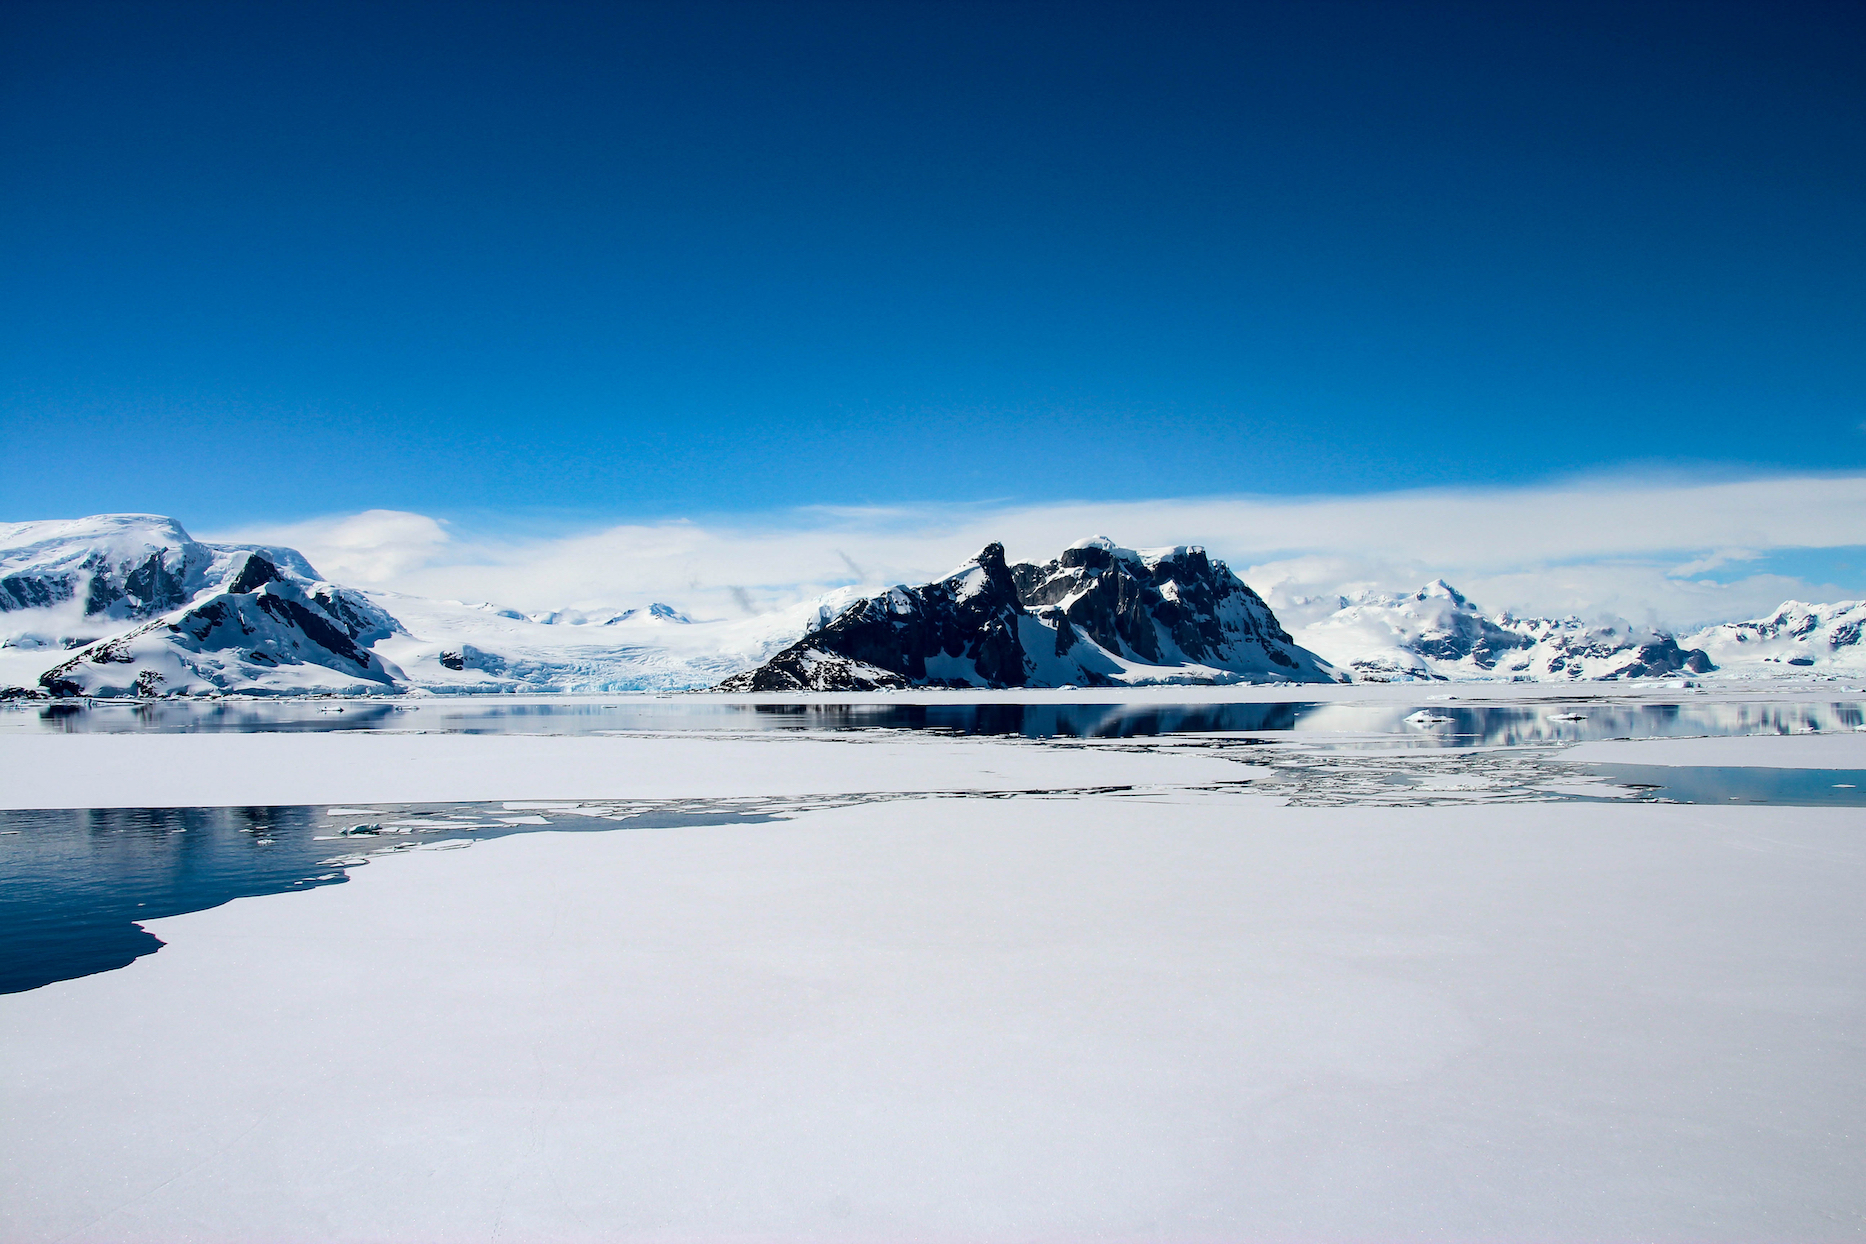 Scientists discovered that more of the Totten Glacier is floating than previously realized, which could substantially accelerate the rate at which the ice continues to melt.